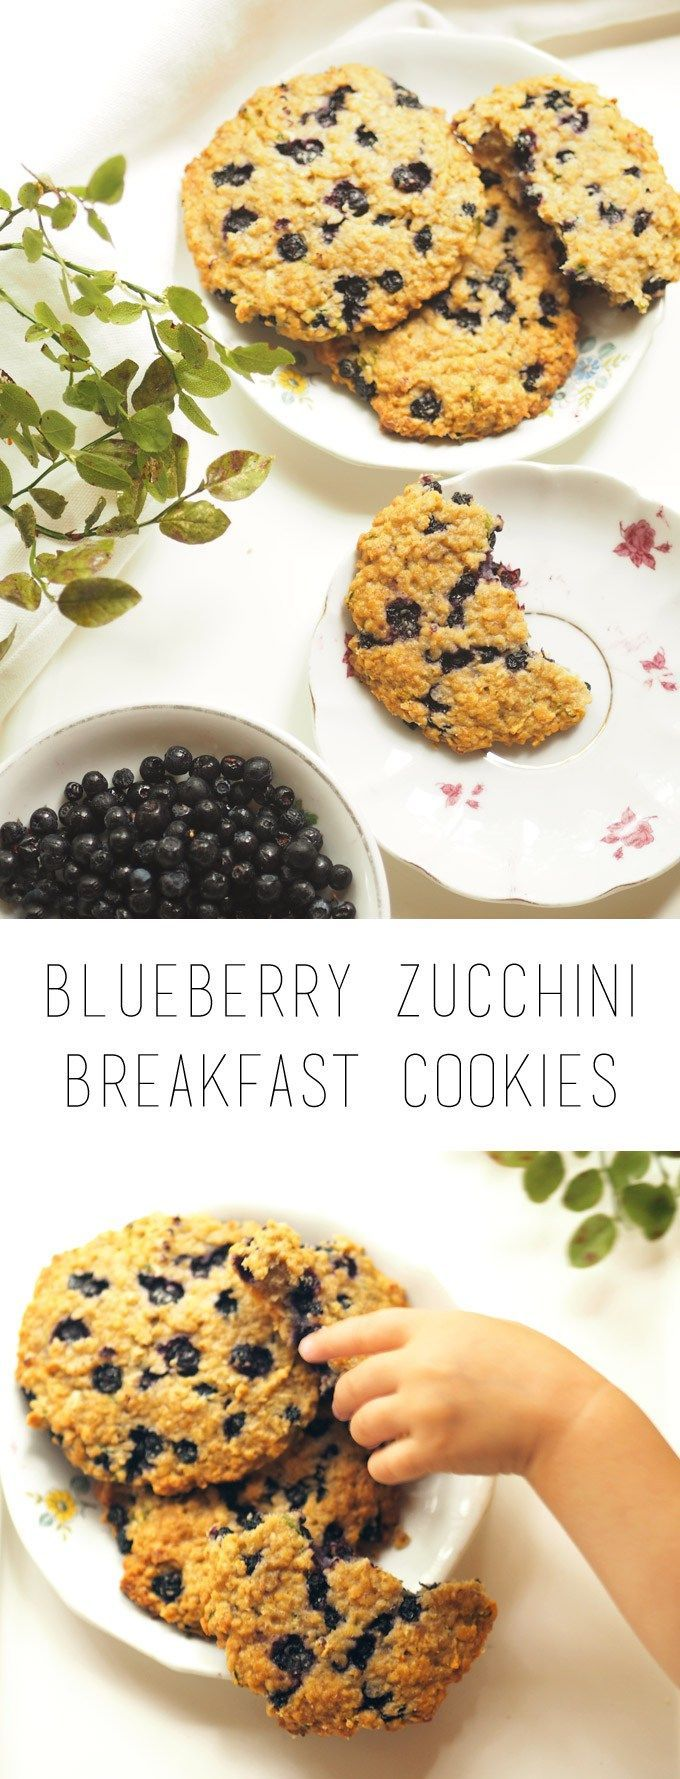 Healthy & kid-friendly blueberry zucchini cookies